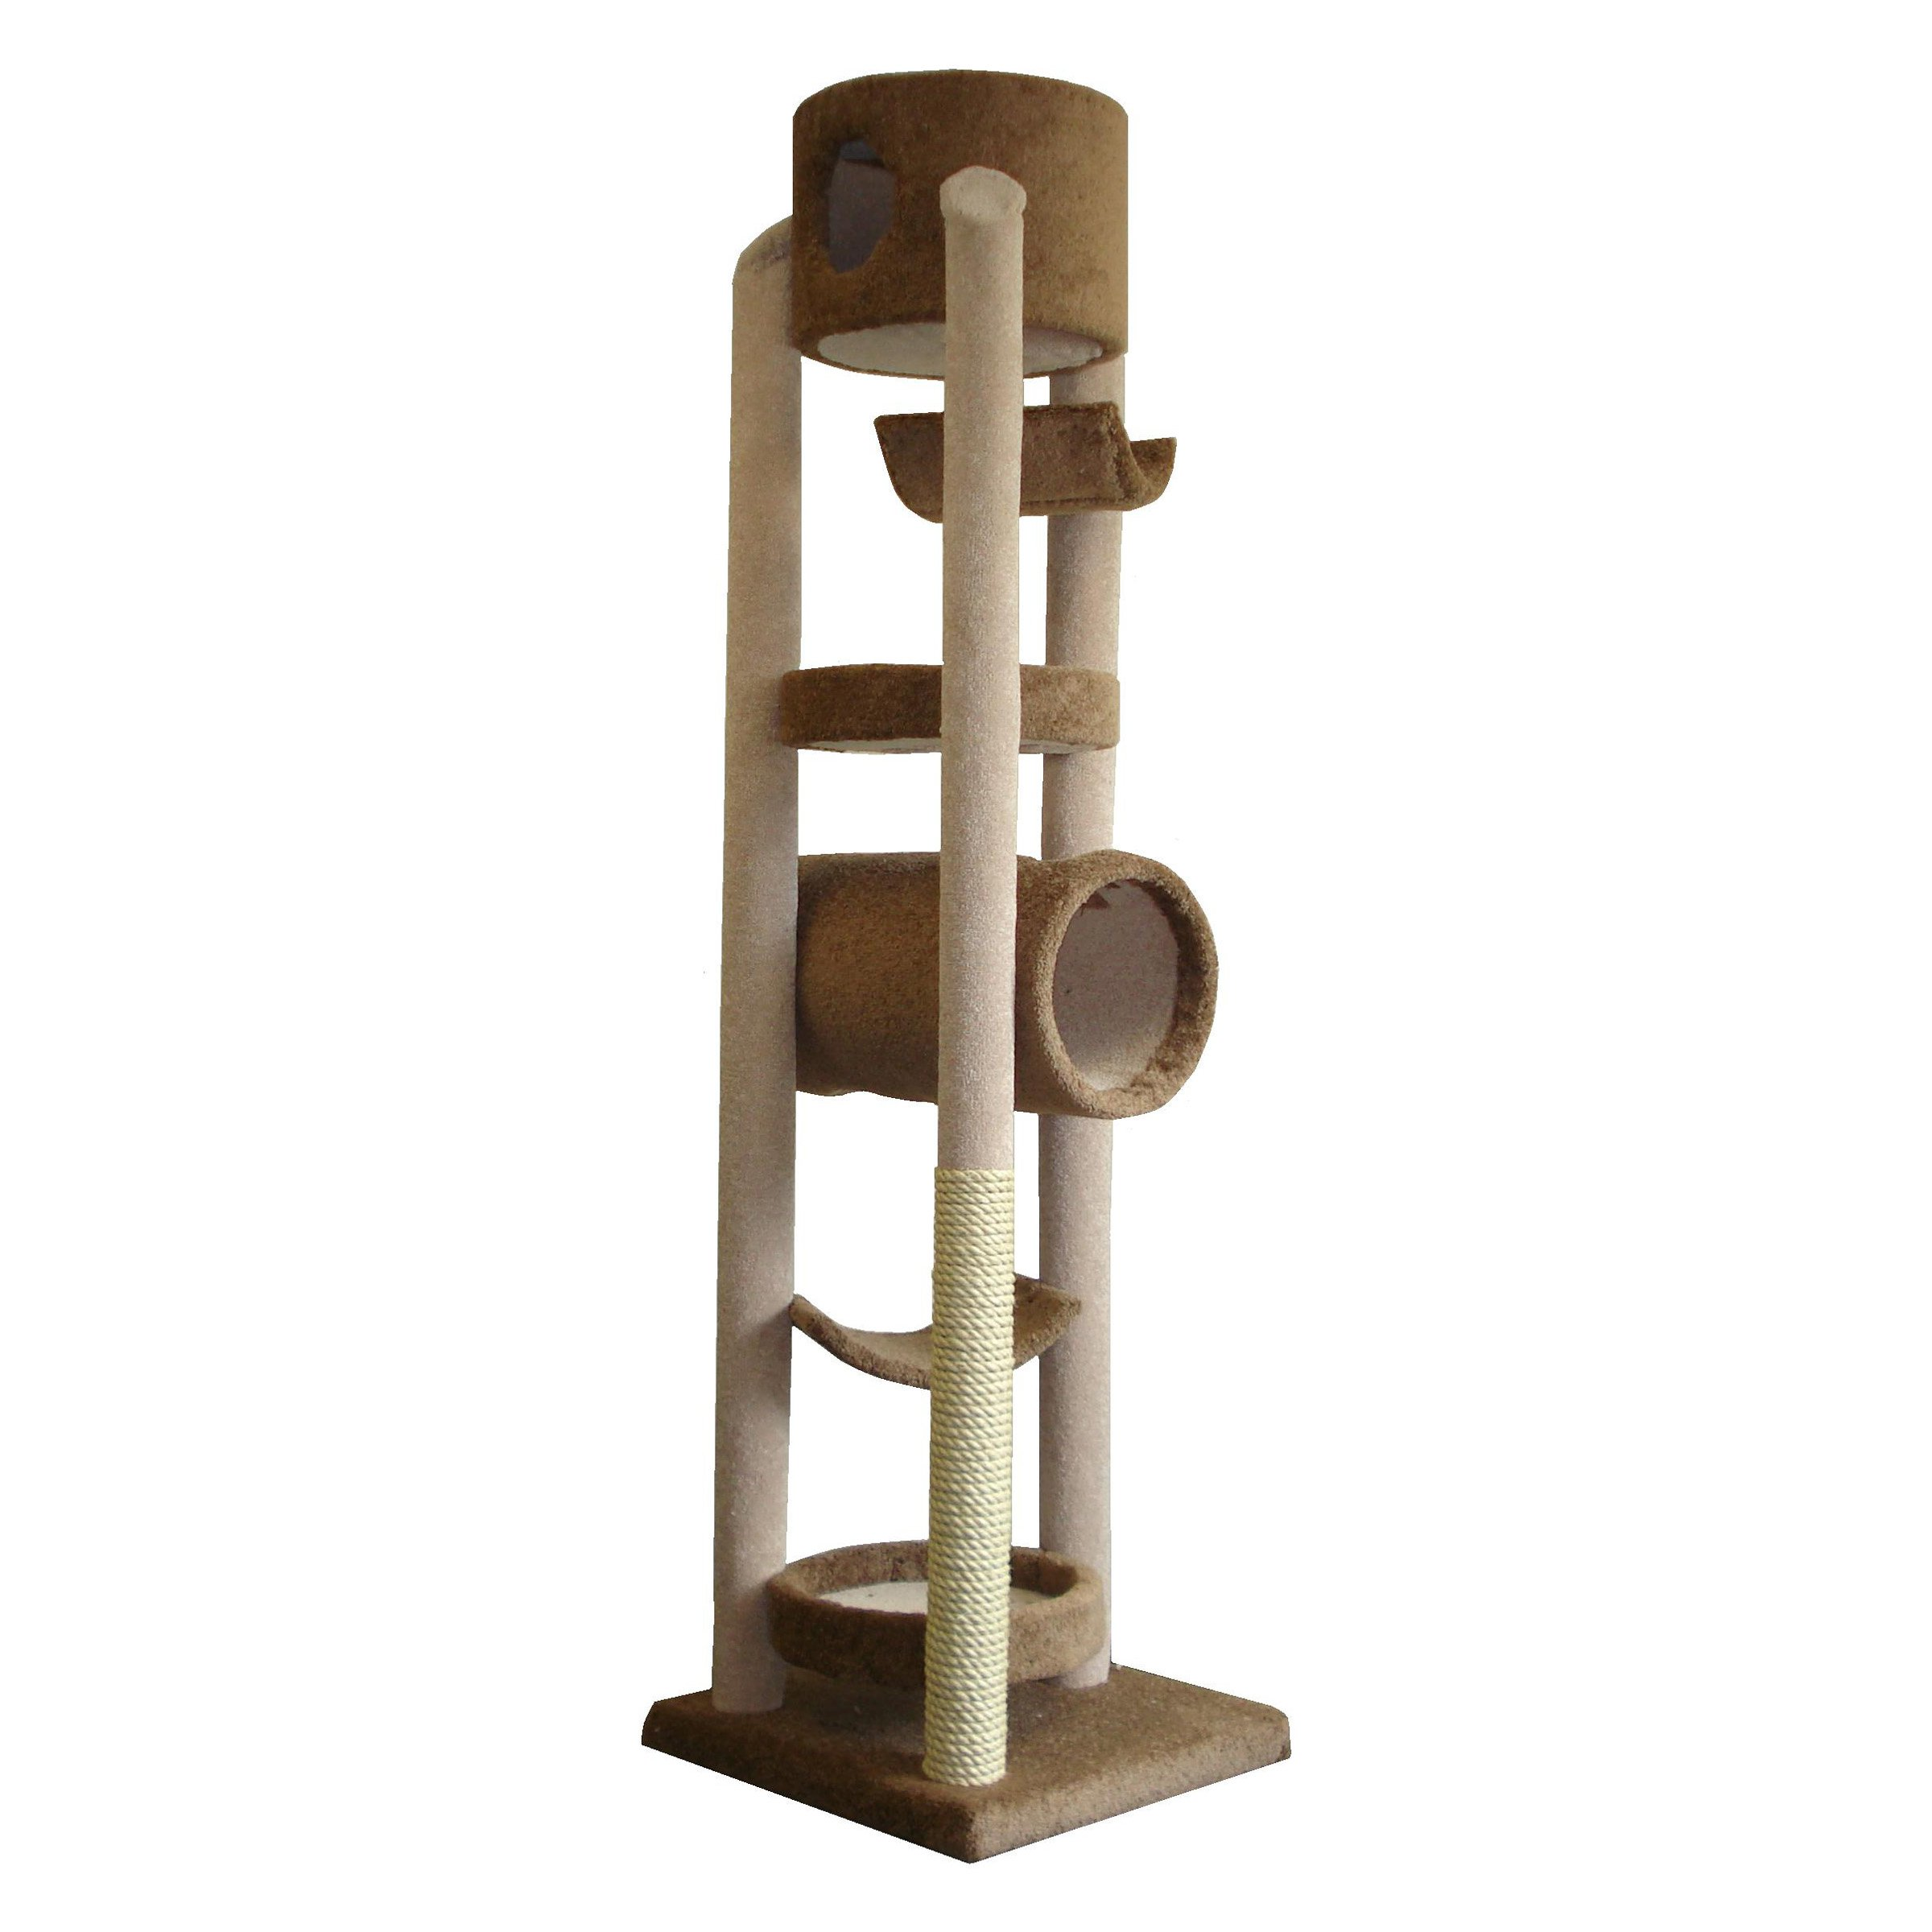 Molly and Friends VIRGIE Green Five Tier Unit Cat Tower